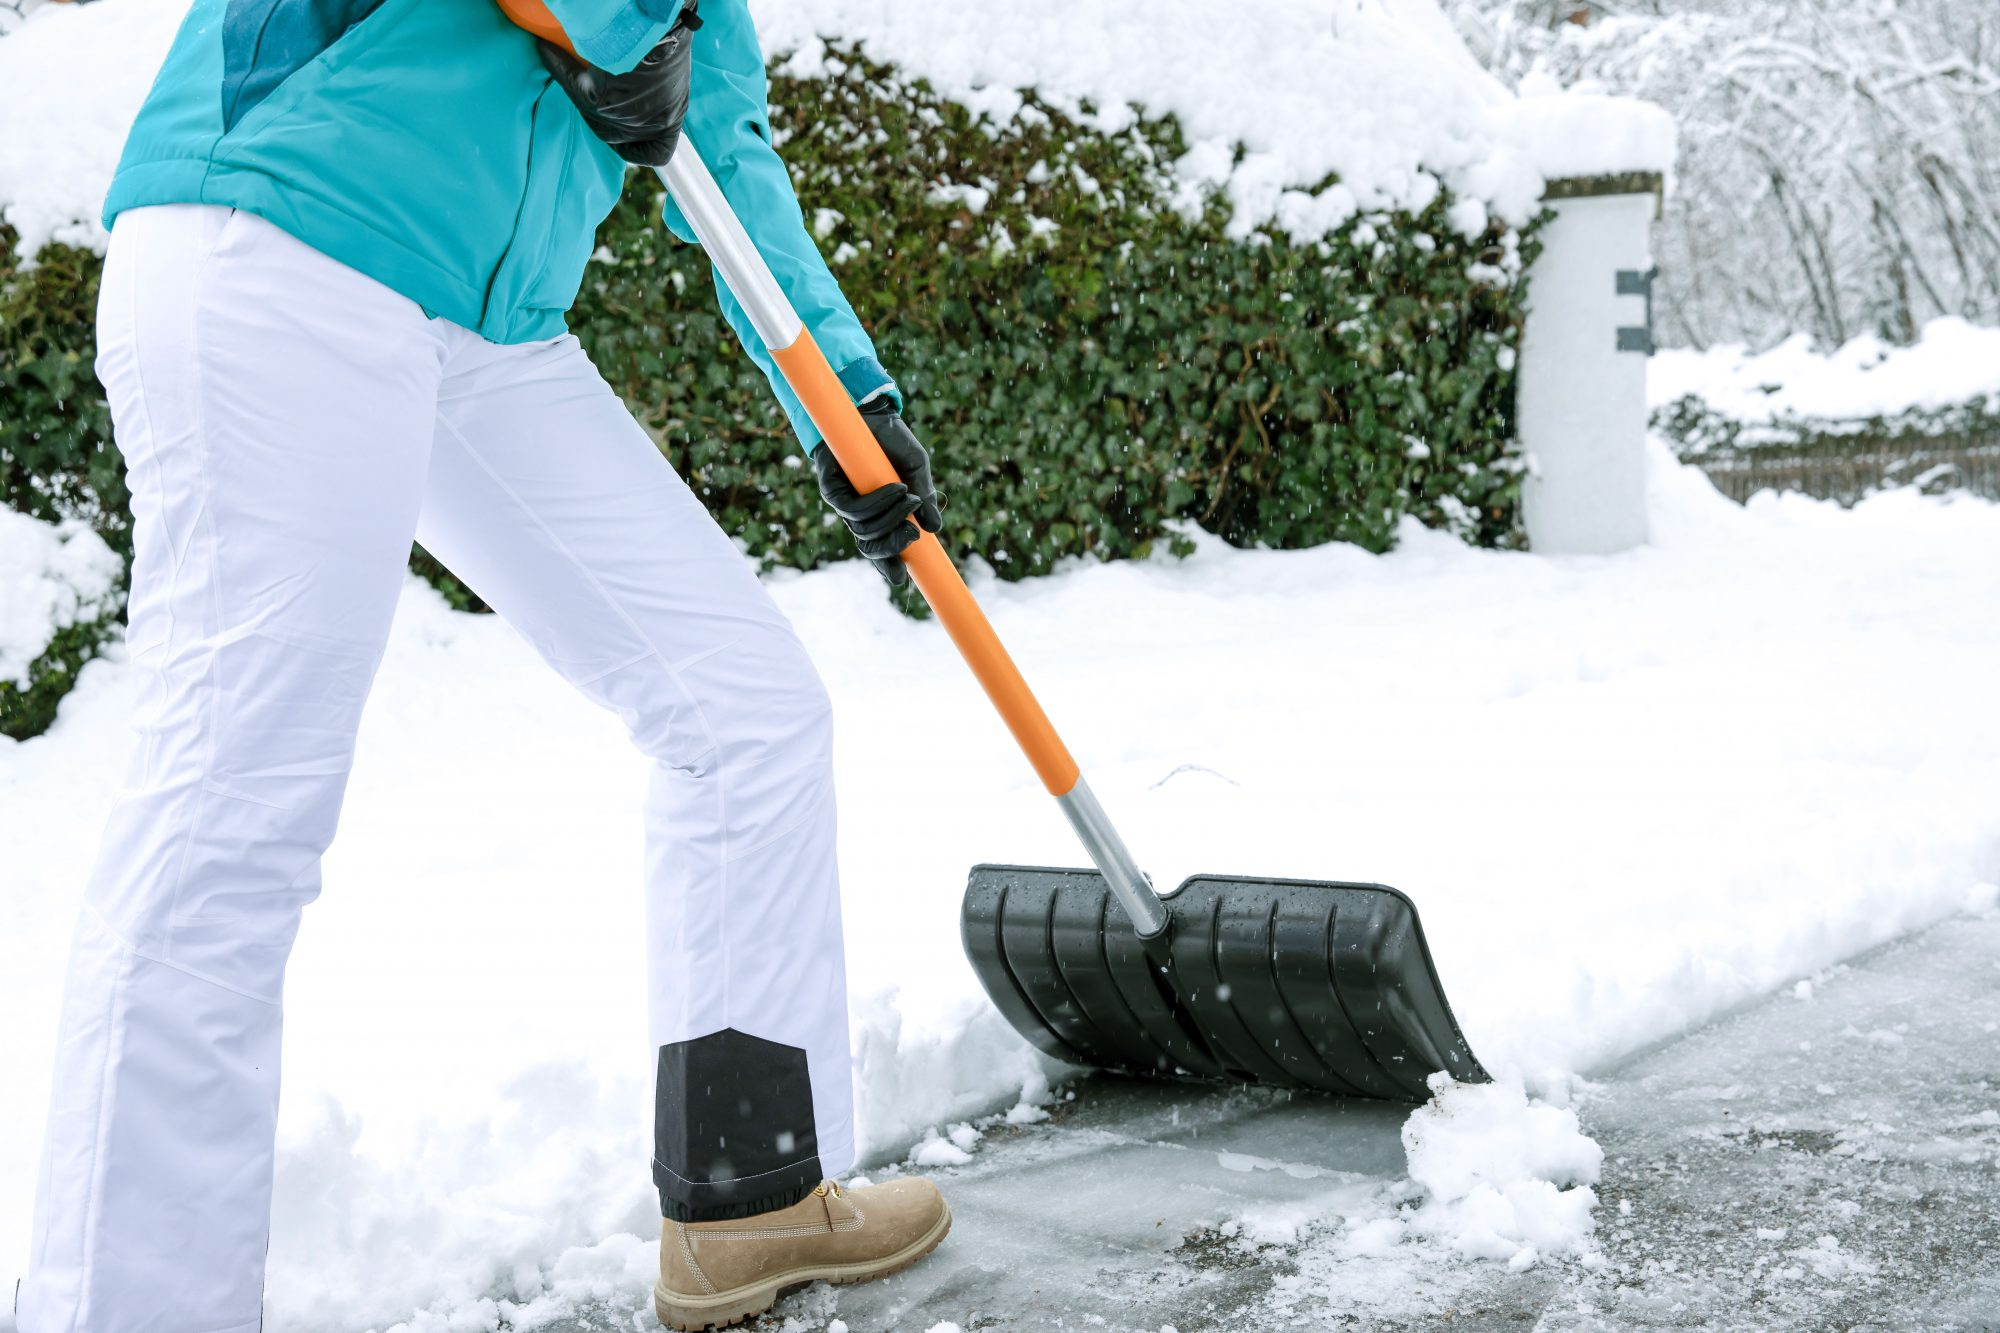 person shoveling snow in winter clothes